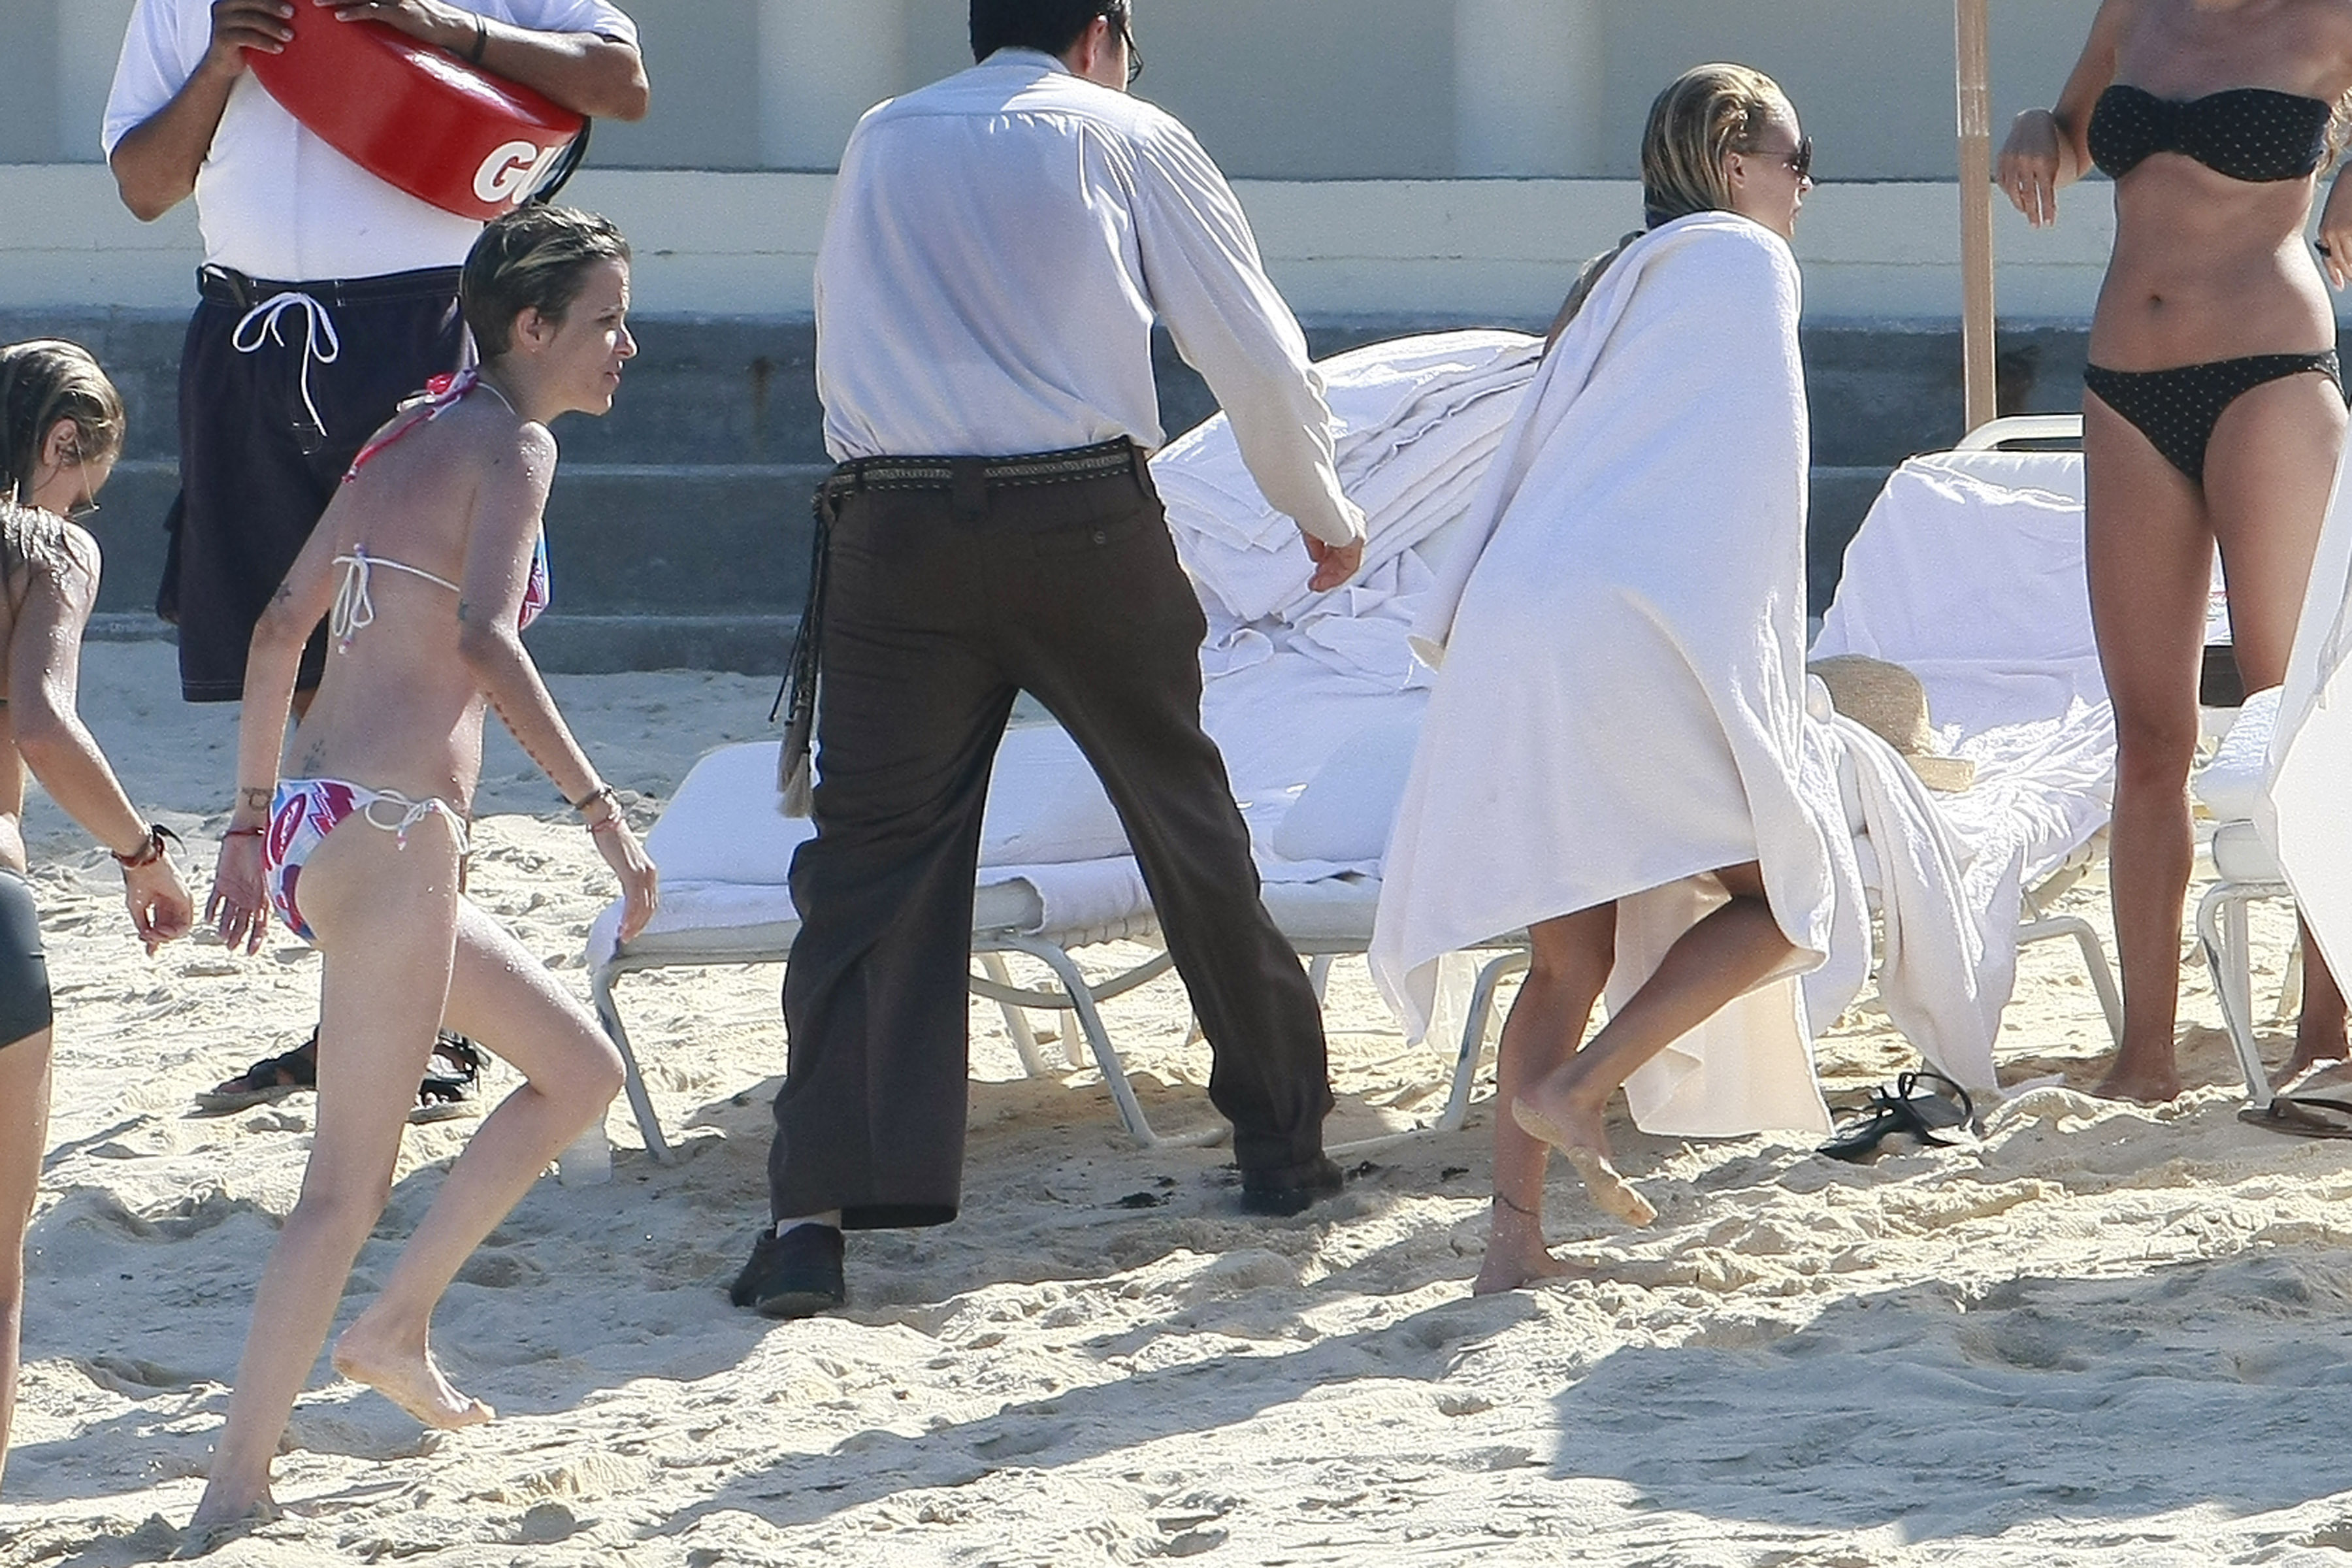 Nicole Richie dried off after swimming in the ocean.